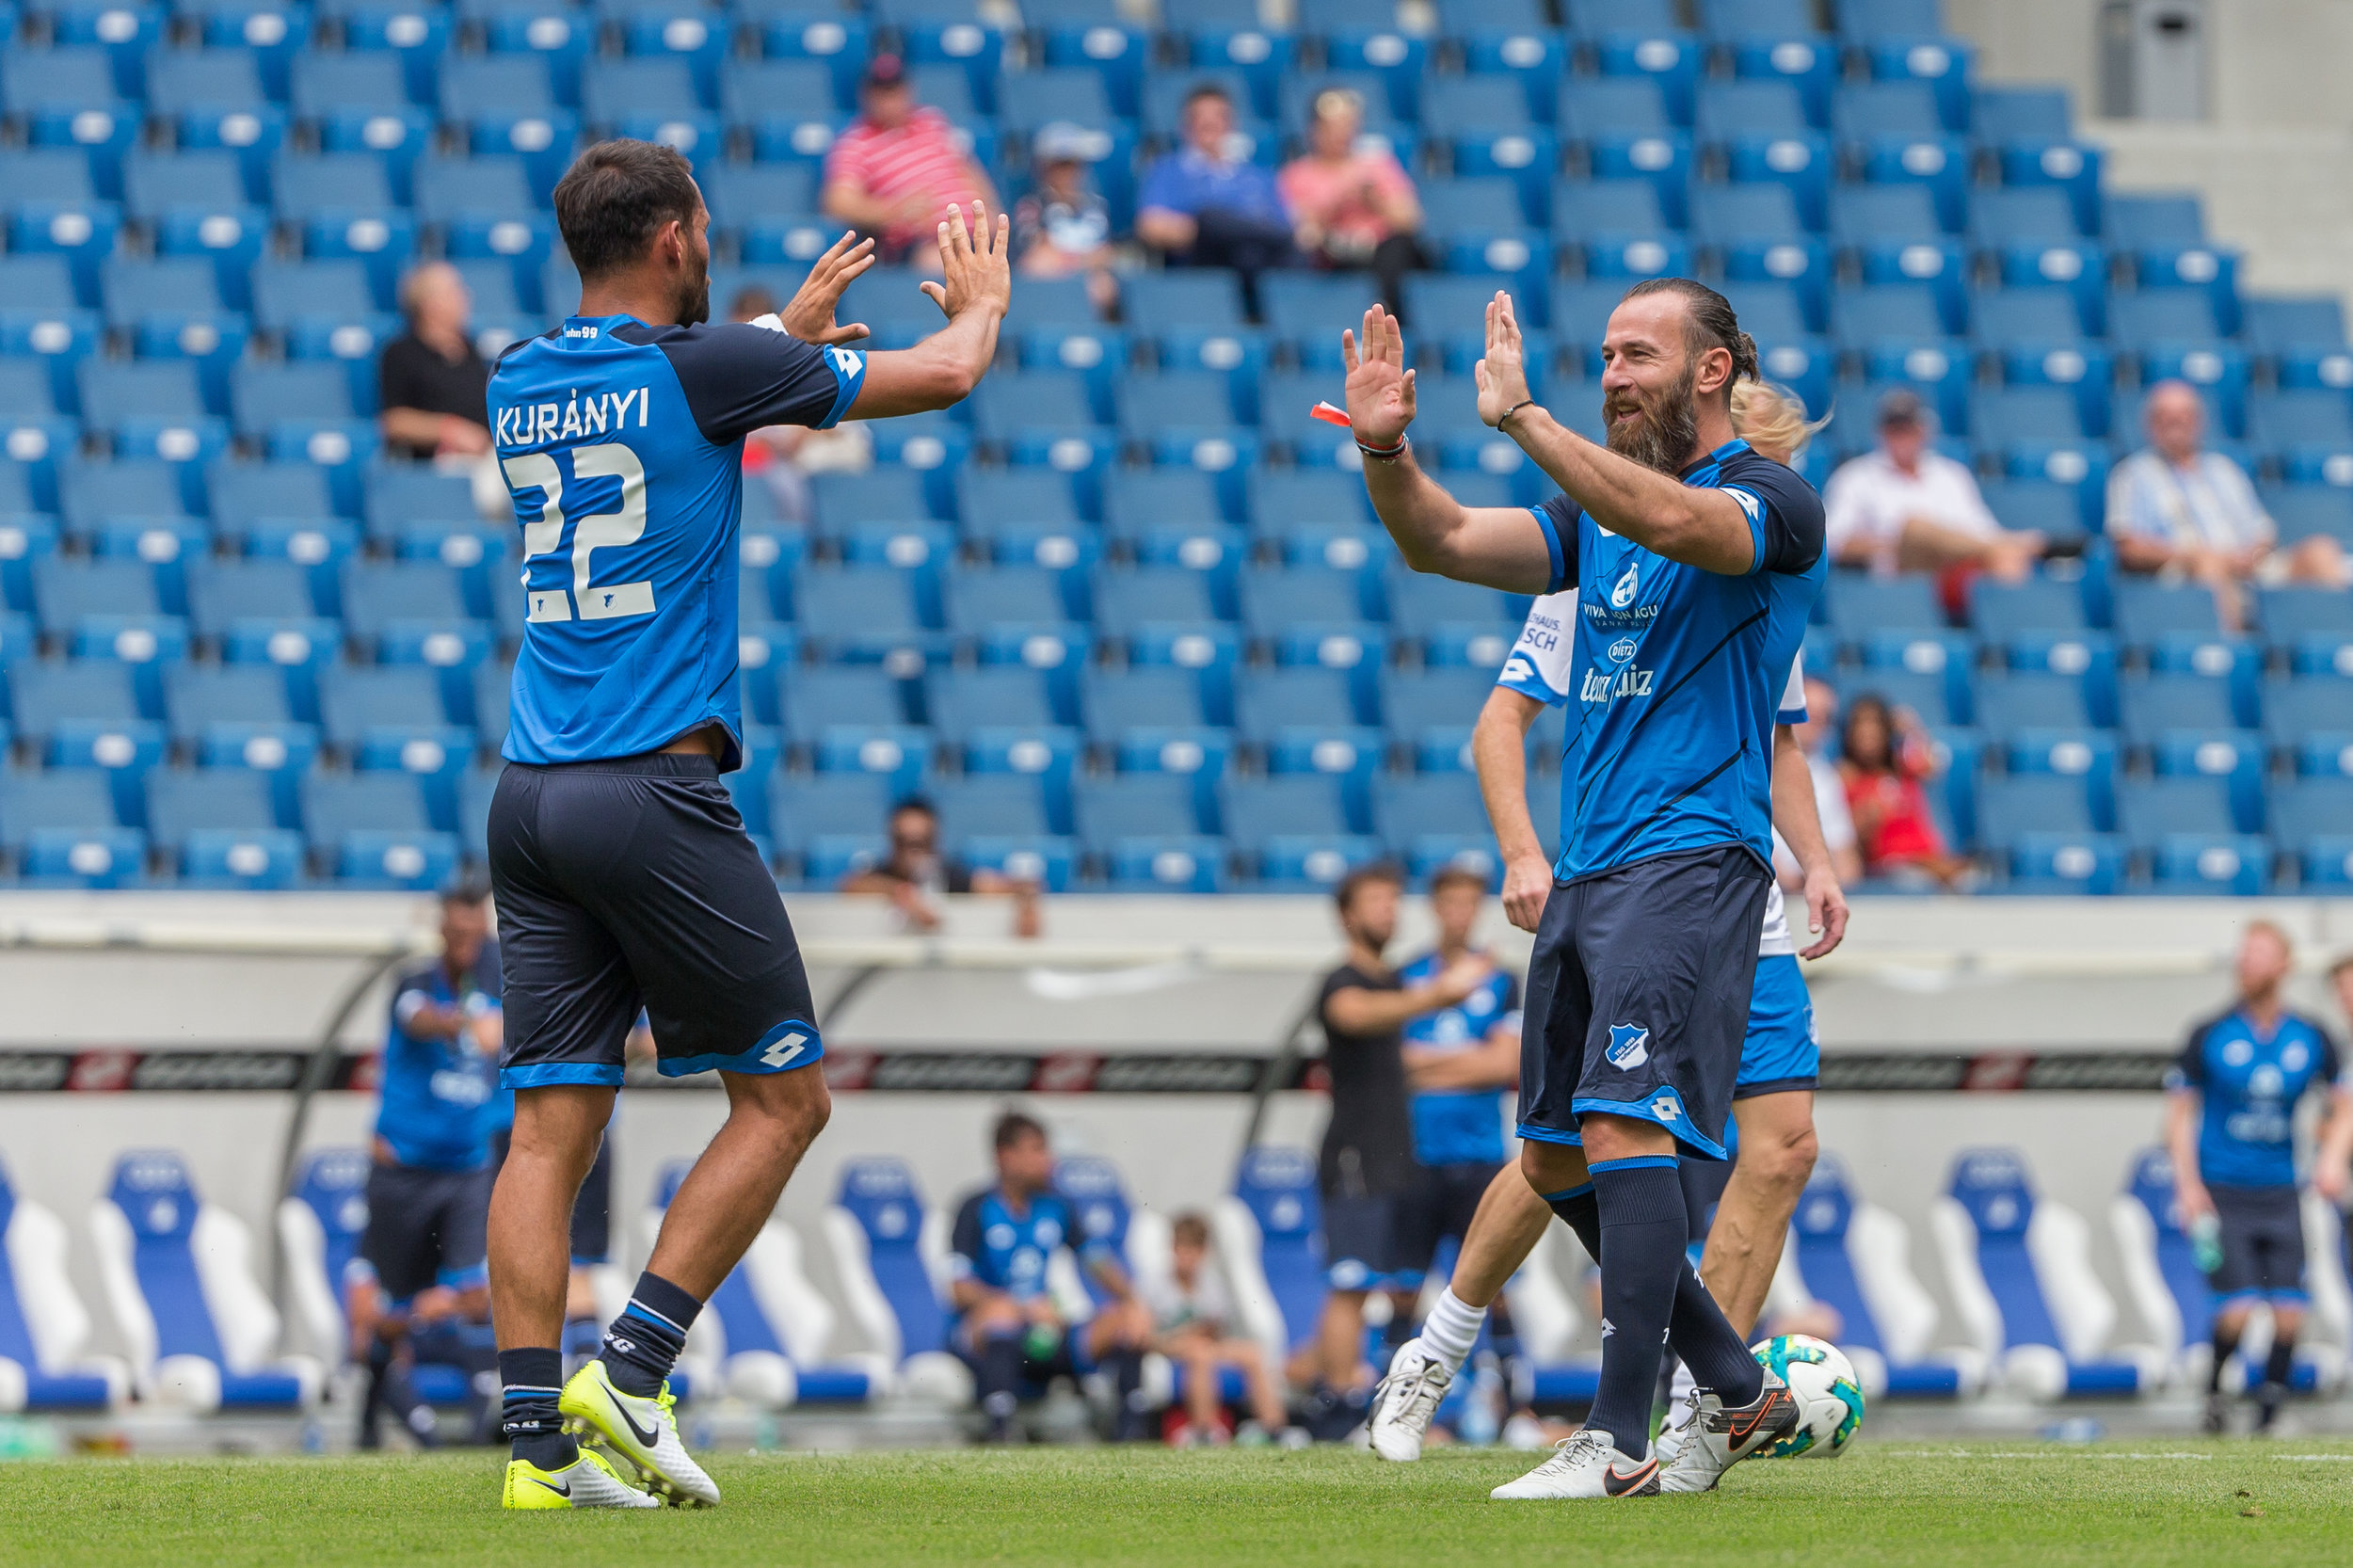 Kuranyi celebrates after another goal for the All-Stars.